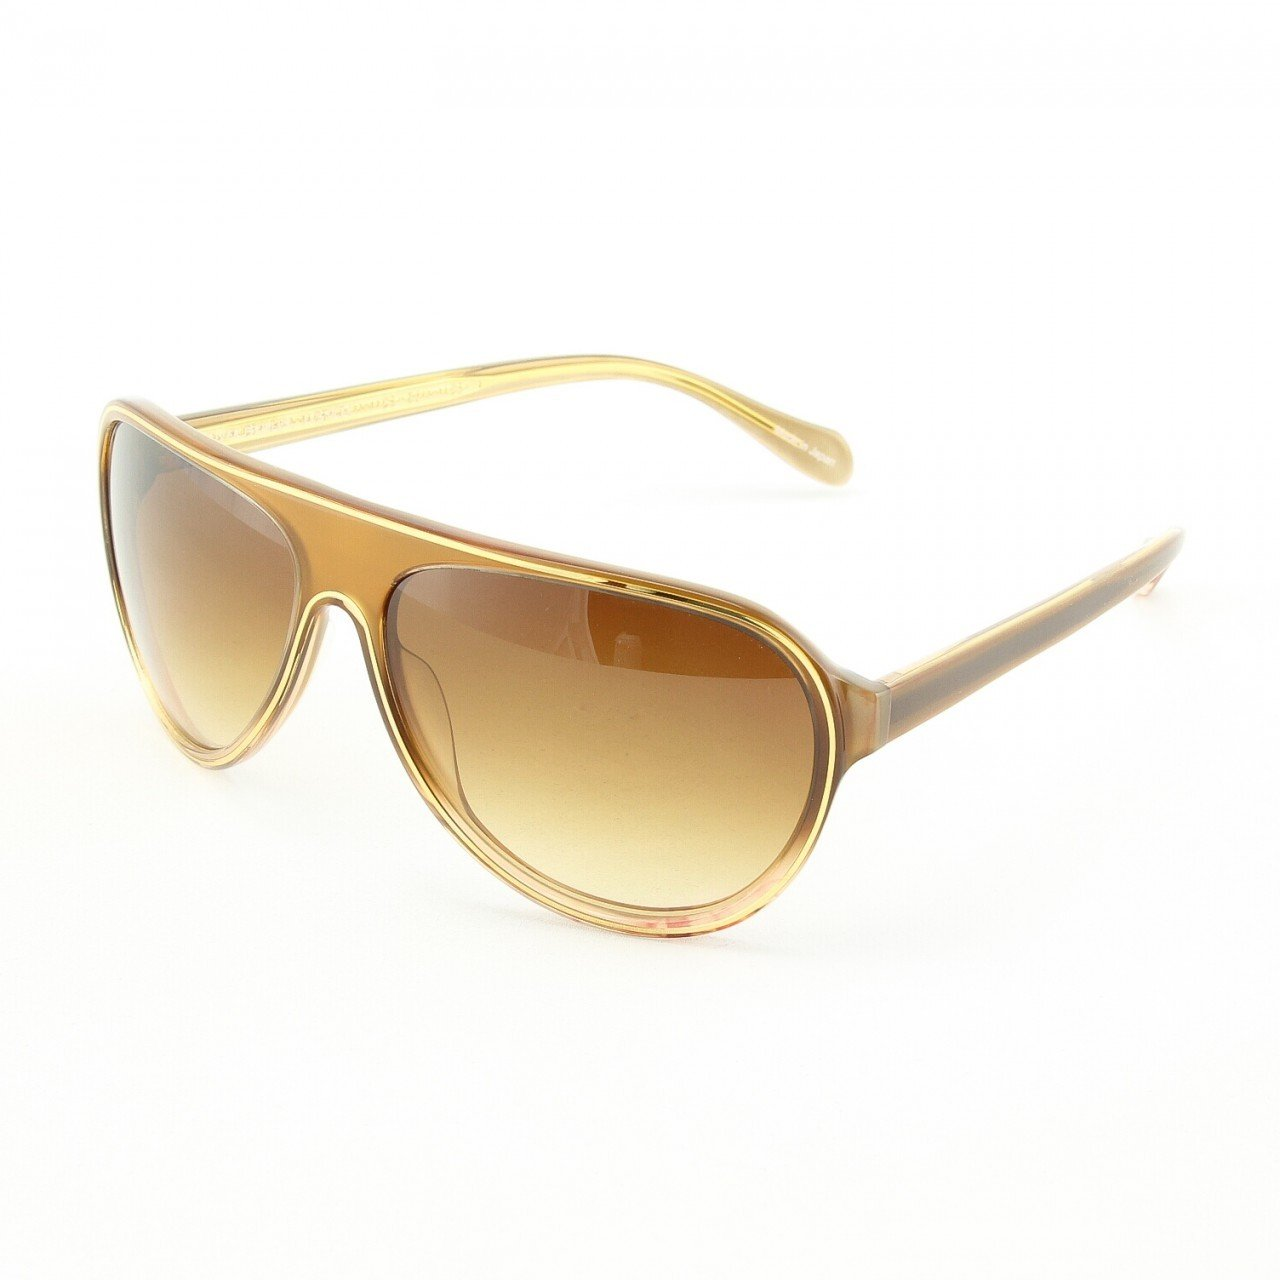 Oliver Peoples Gadson 5092S Sunglasses Col. TZGR Amber Bronze with Brown Gradient Lenses